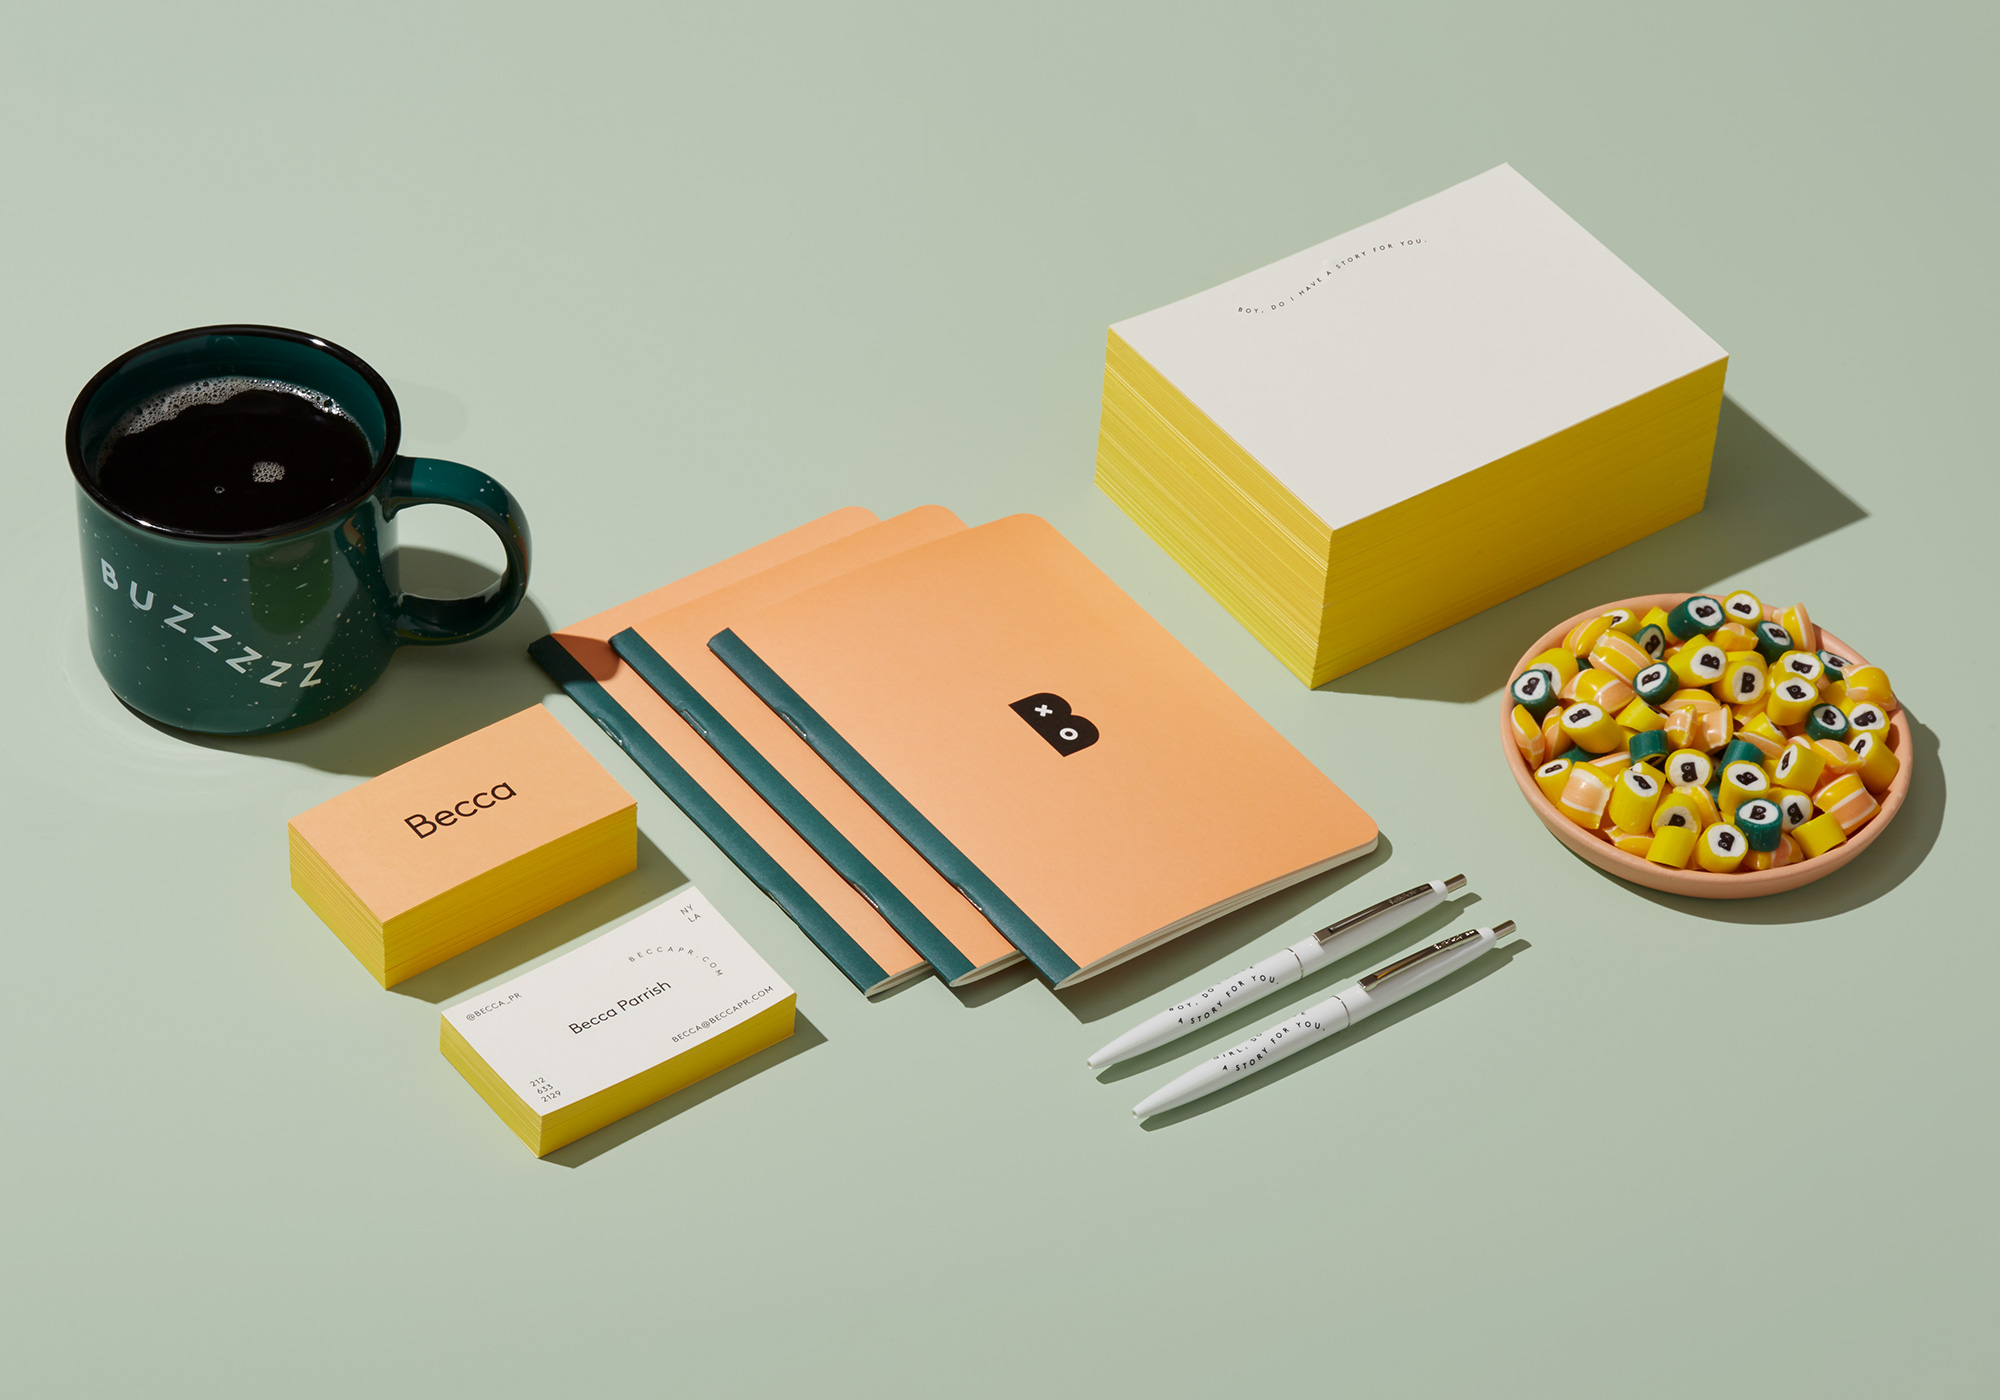 Becca PR Collateral system